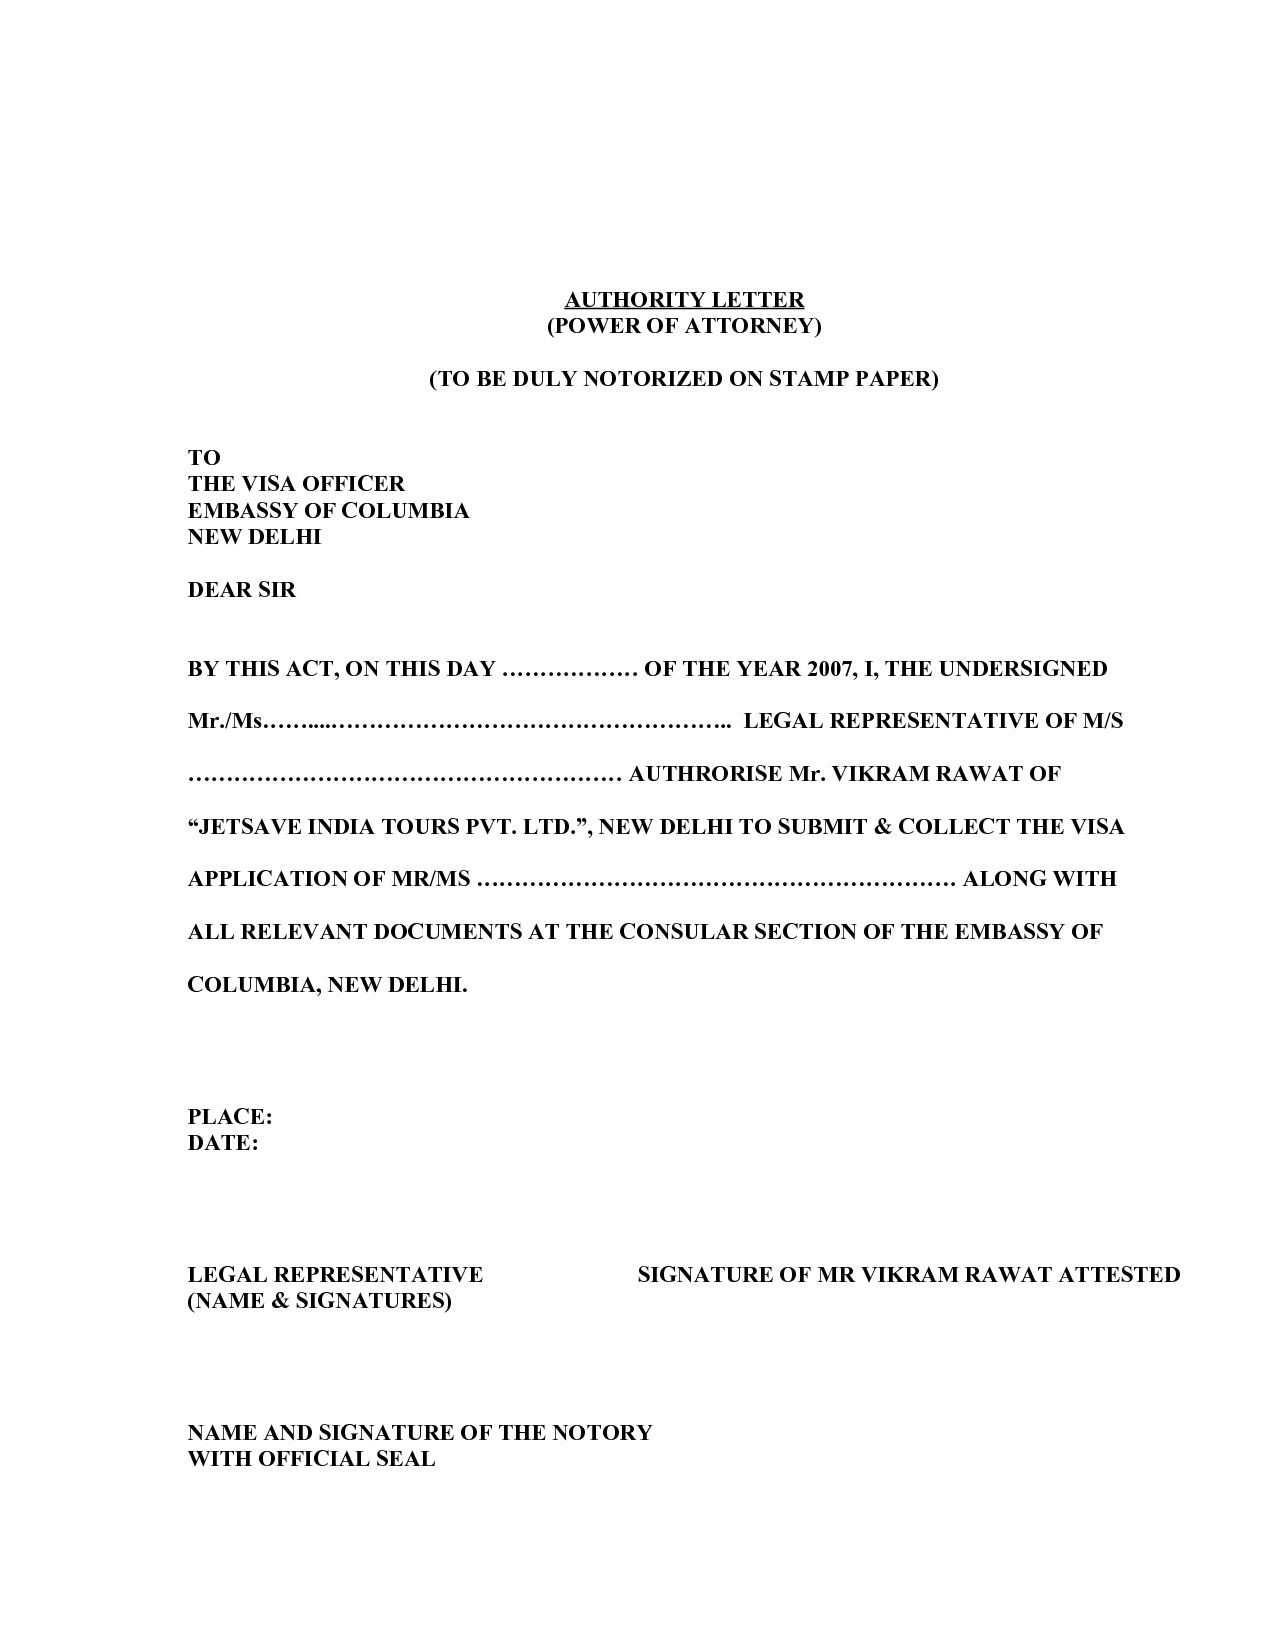 Power Of attorney Letter Template Free - Poa Letter Template Acurnamedia